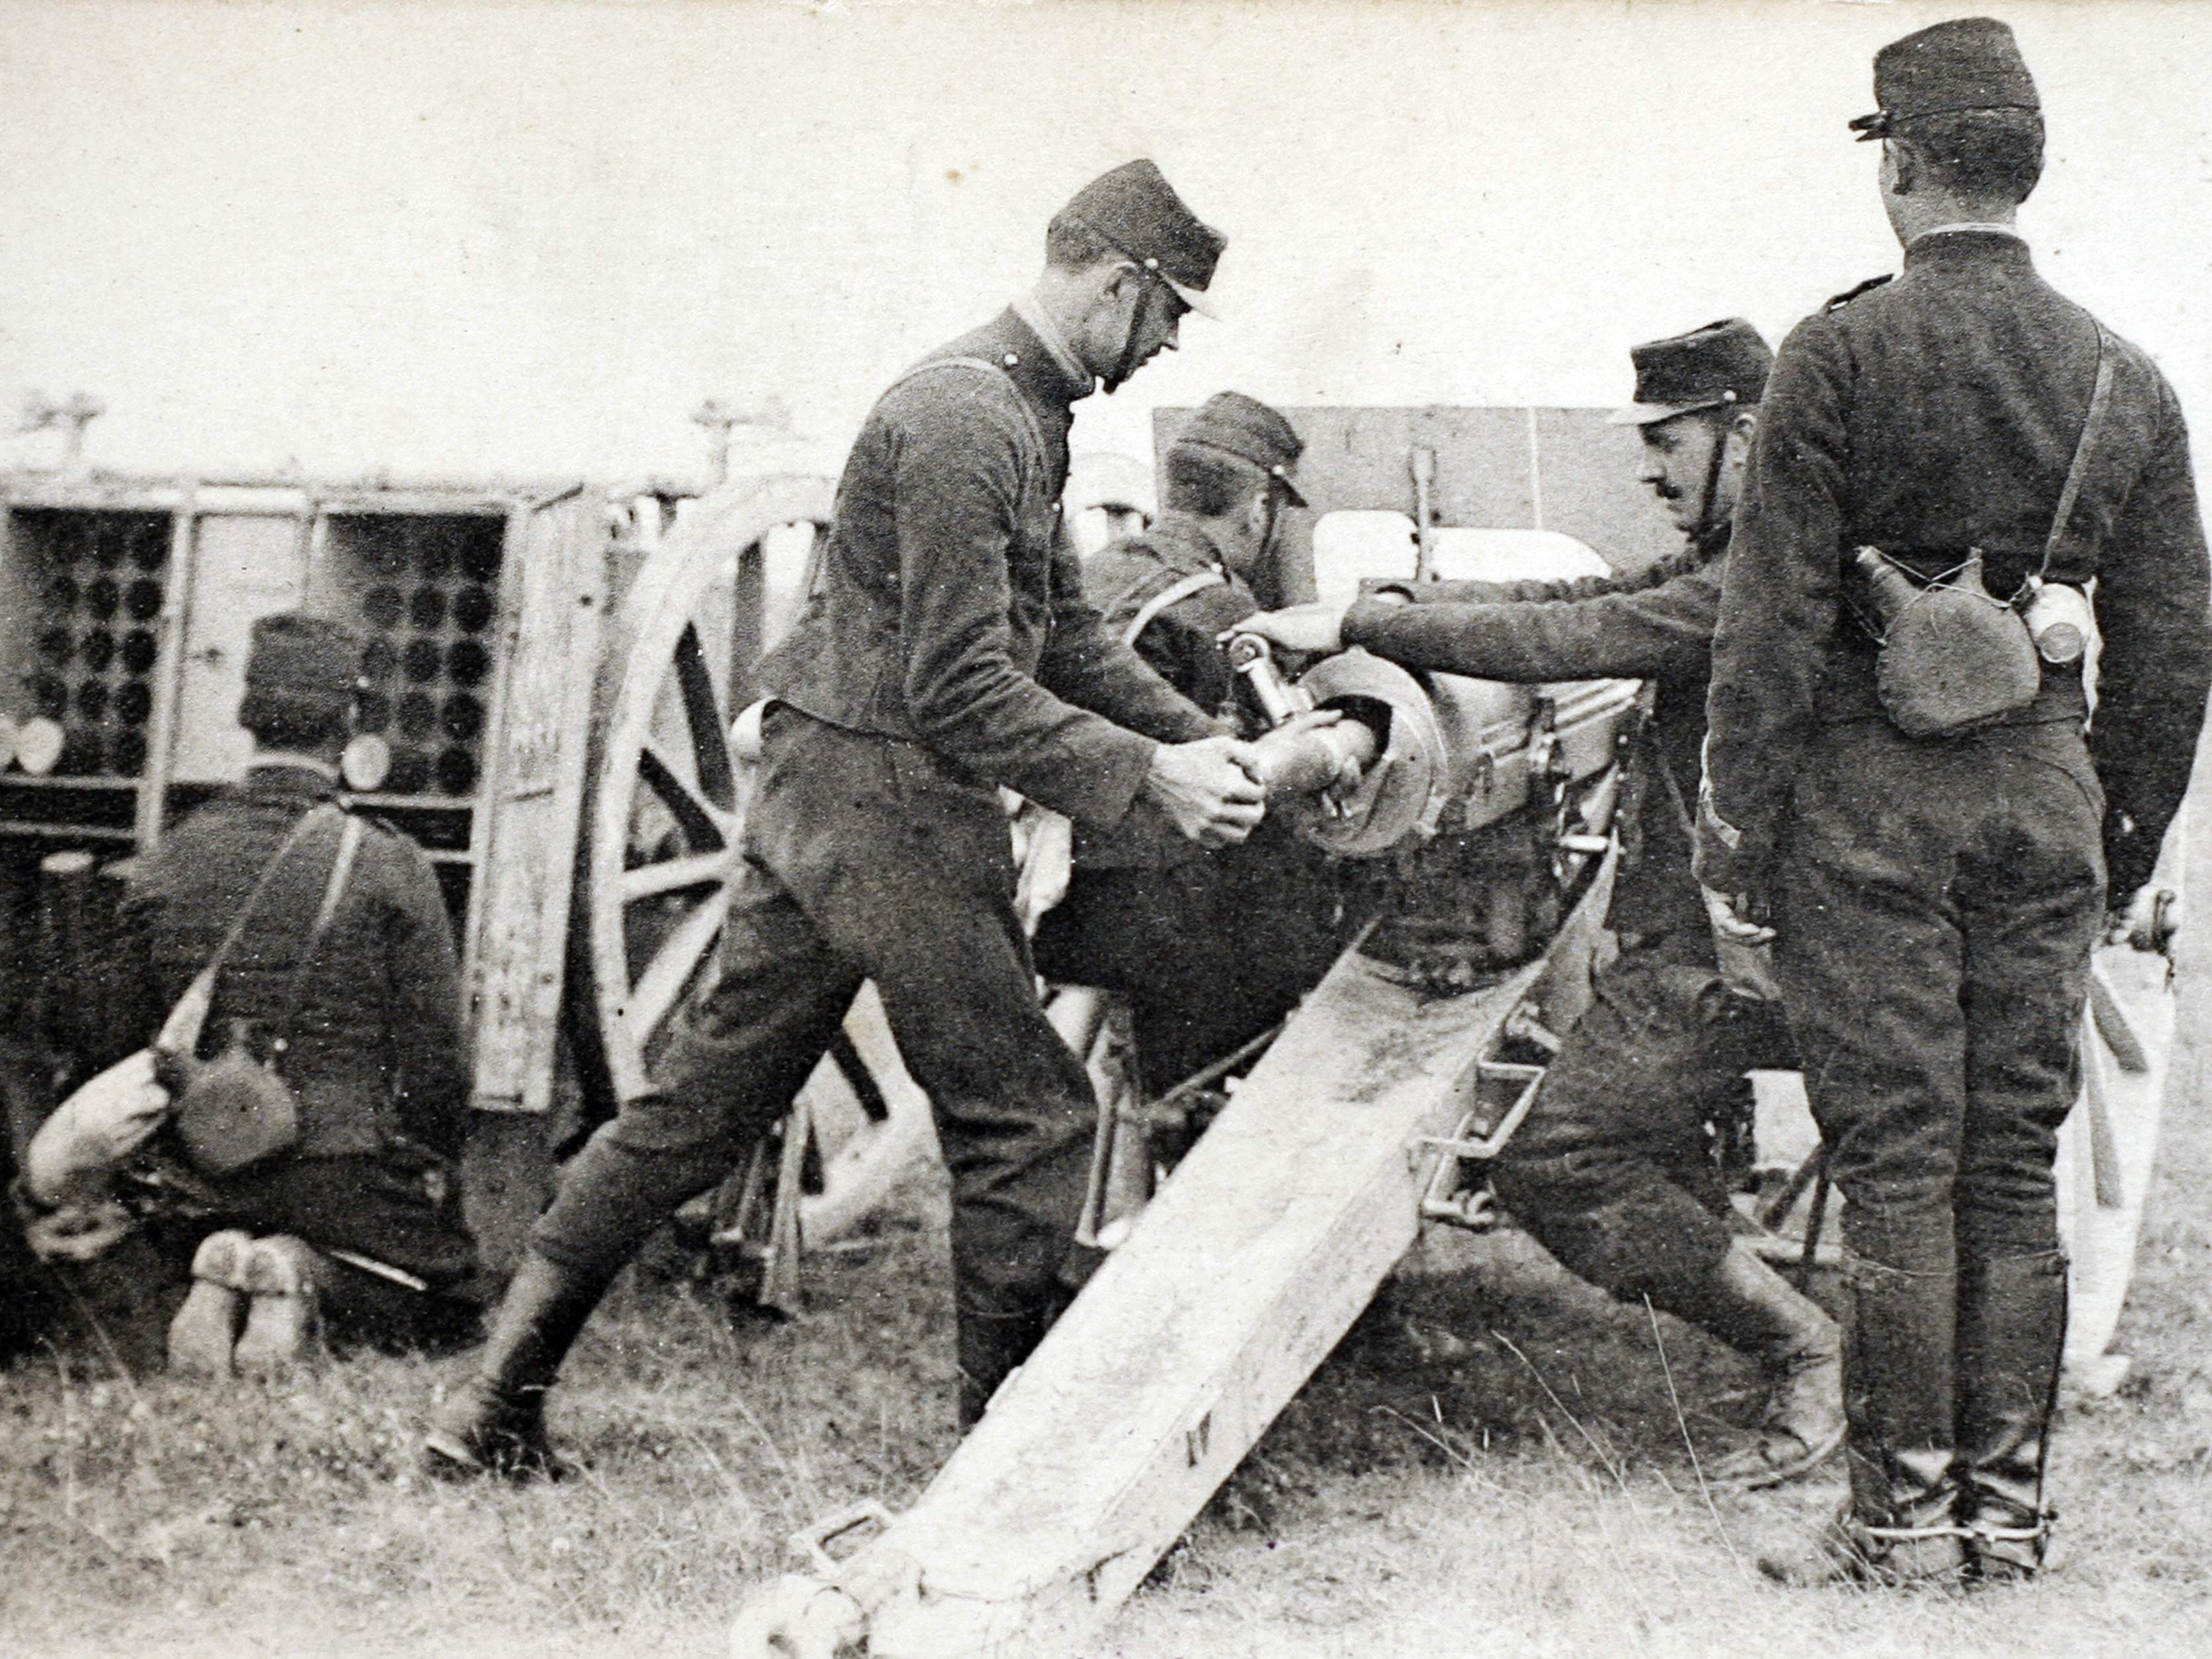 A picture of a post card released by the Historial de Peronne Museum of WWI, shows French artillery soldiers with a 75mm cannon in 1914 during World War I.